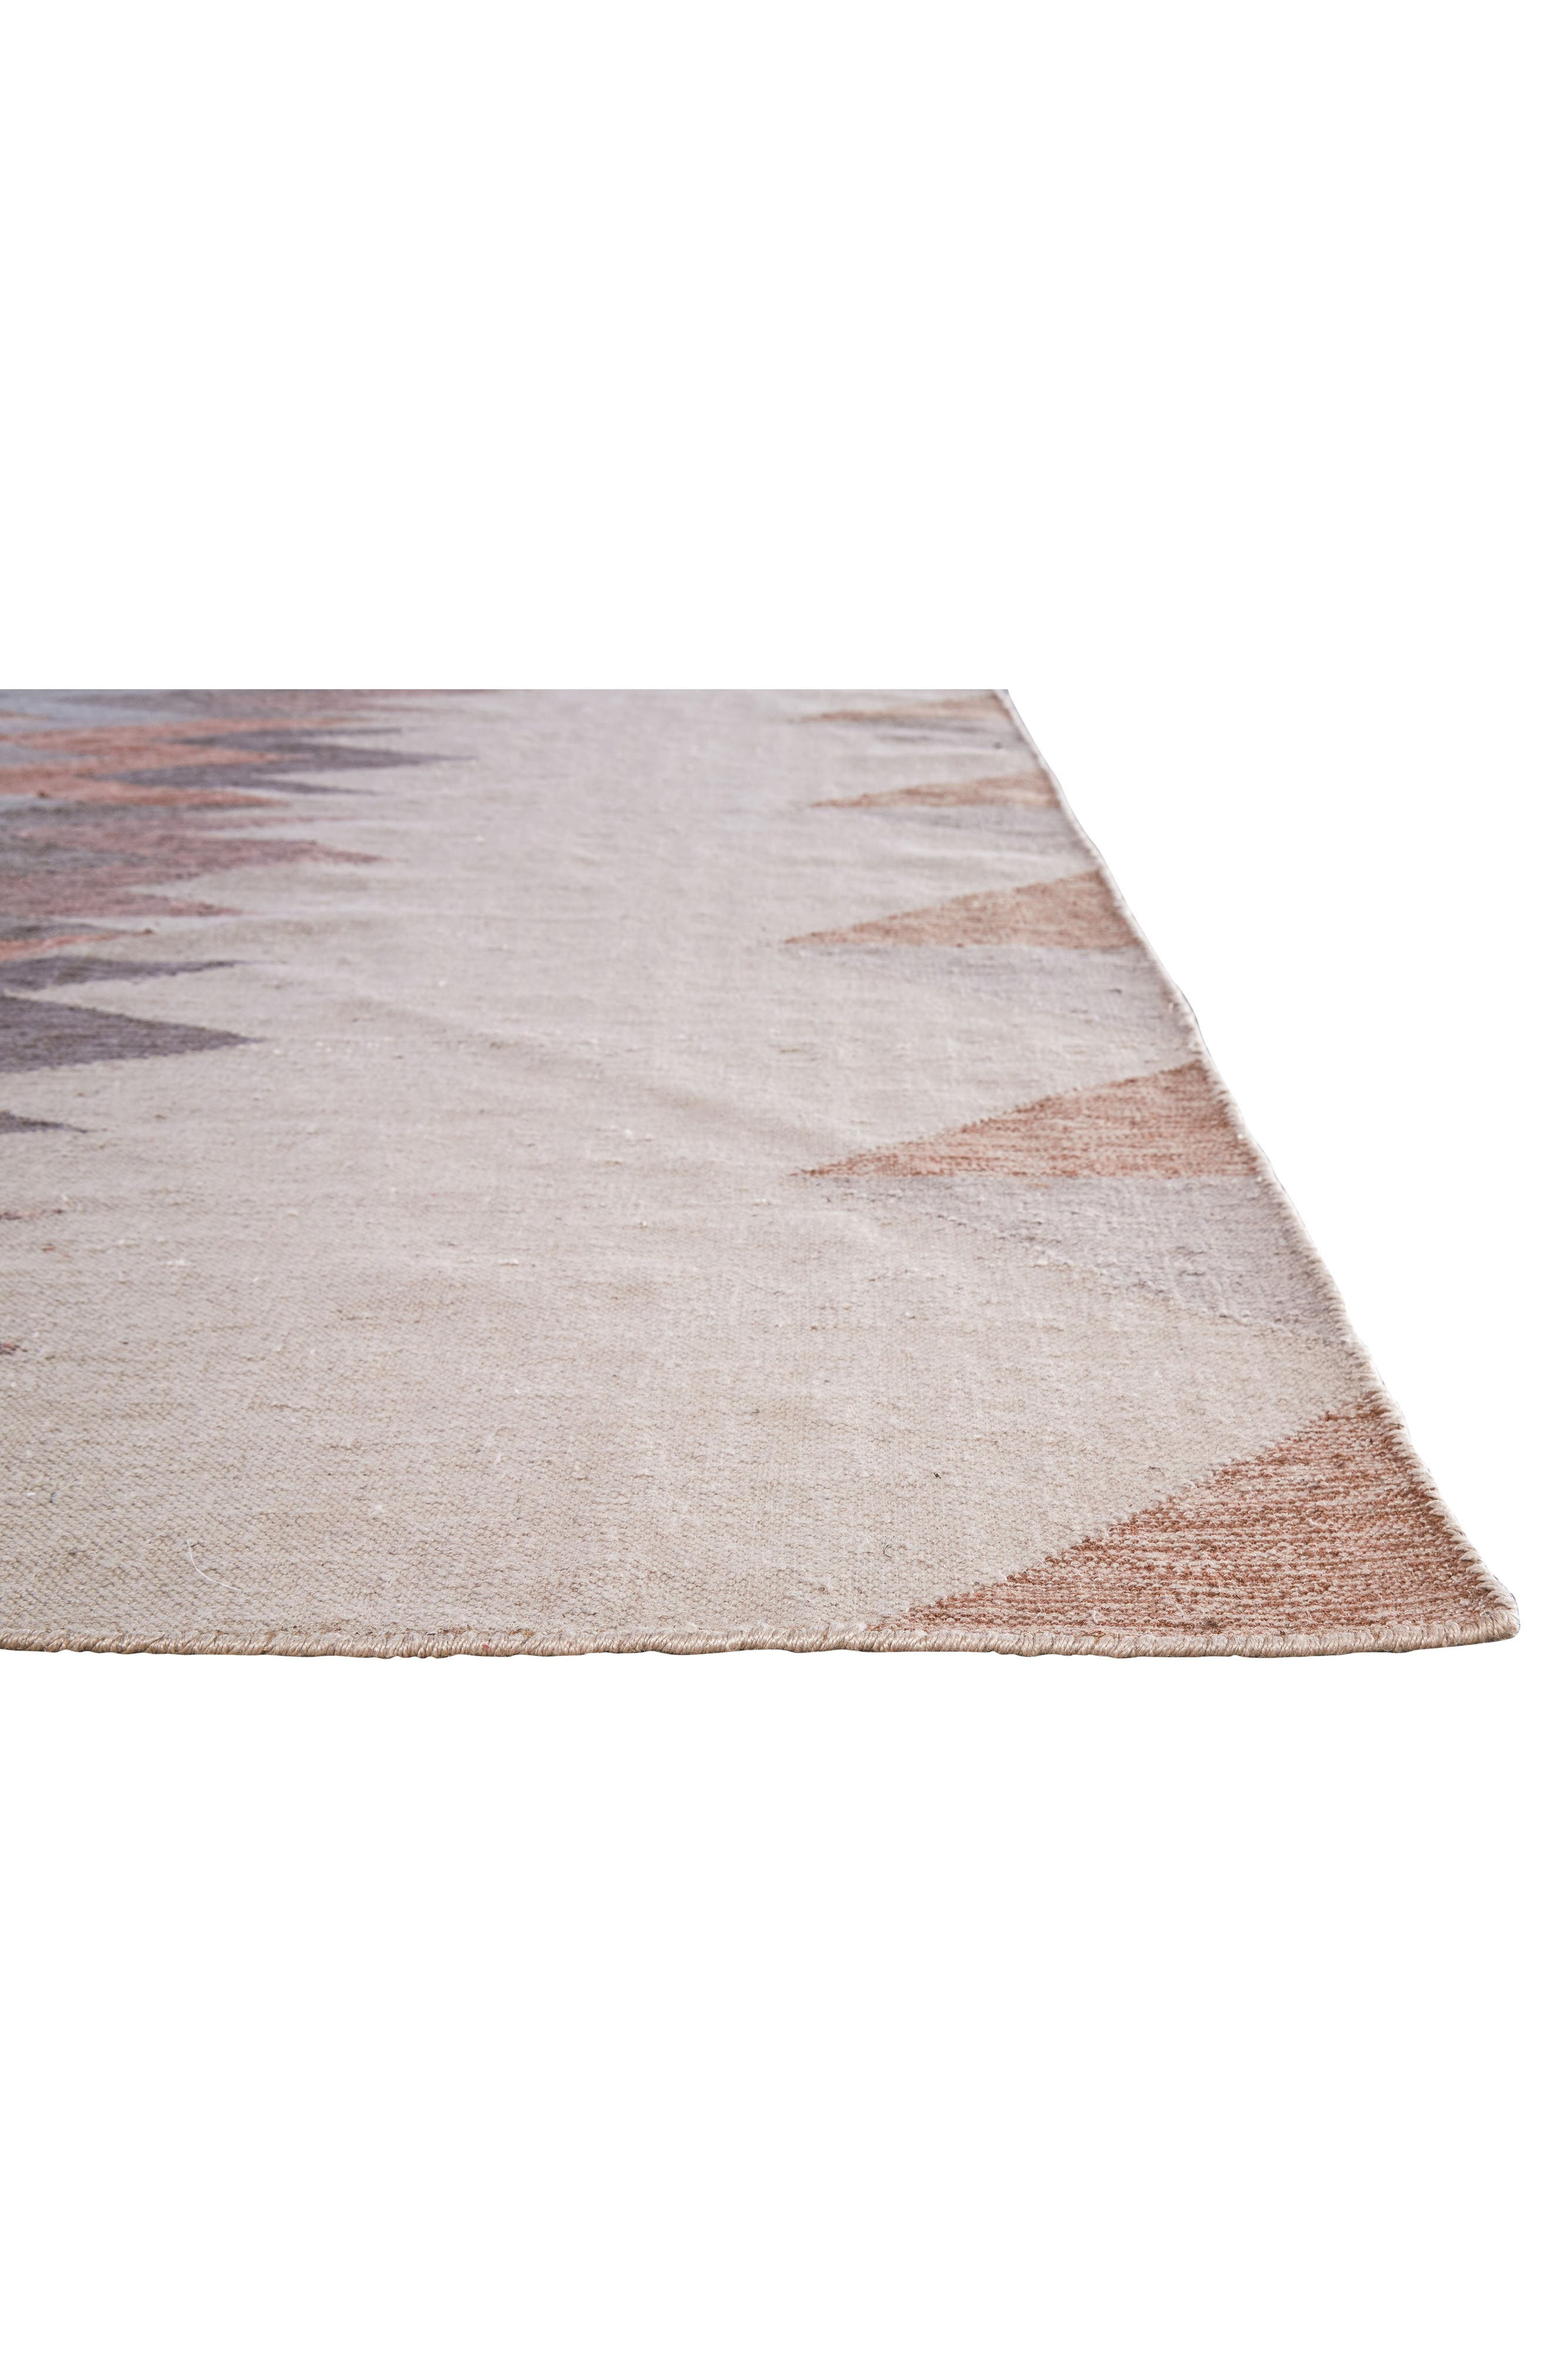 Geo Pattern Indoor/Outdoor Rug,                             Alternate thumbnail 2, color,                             Natural